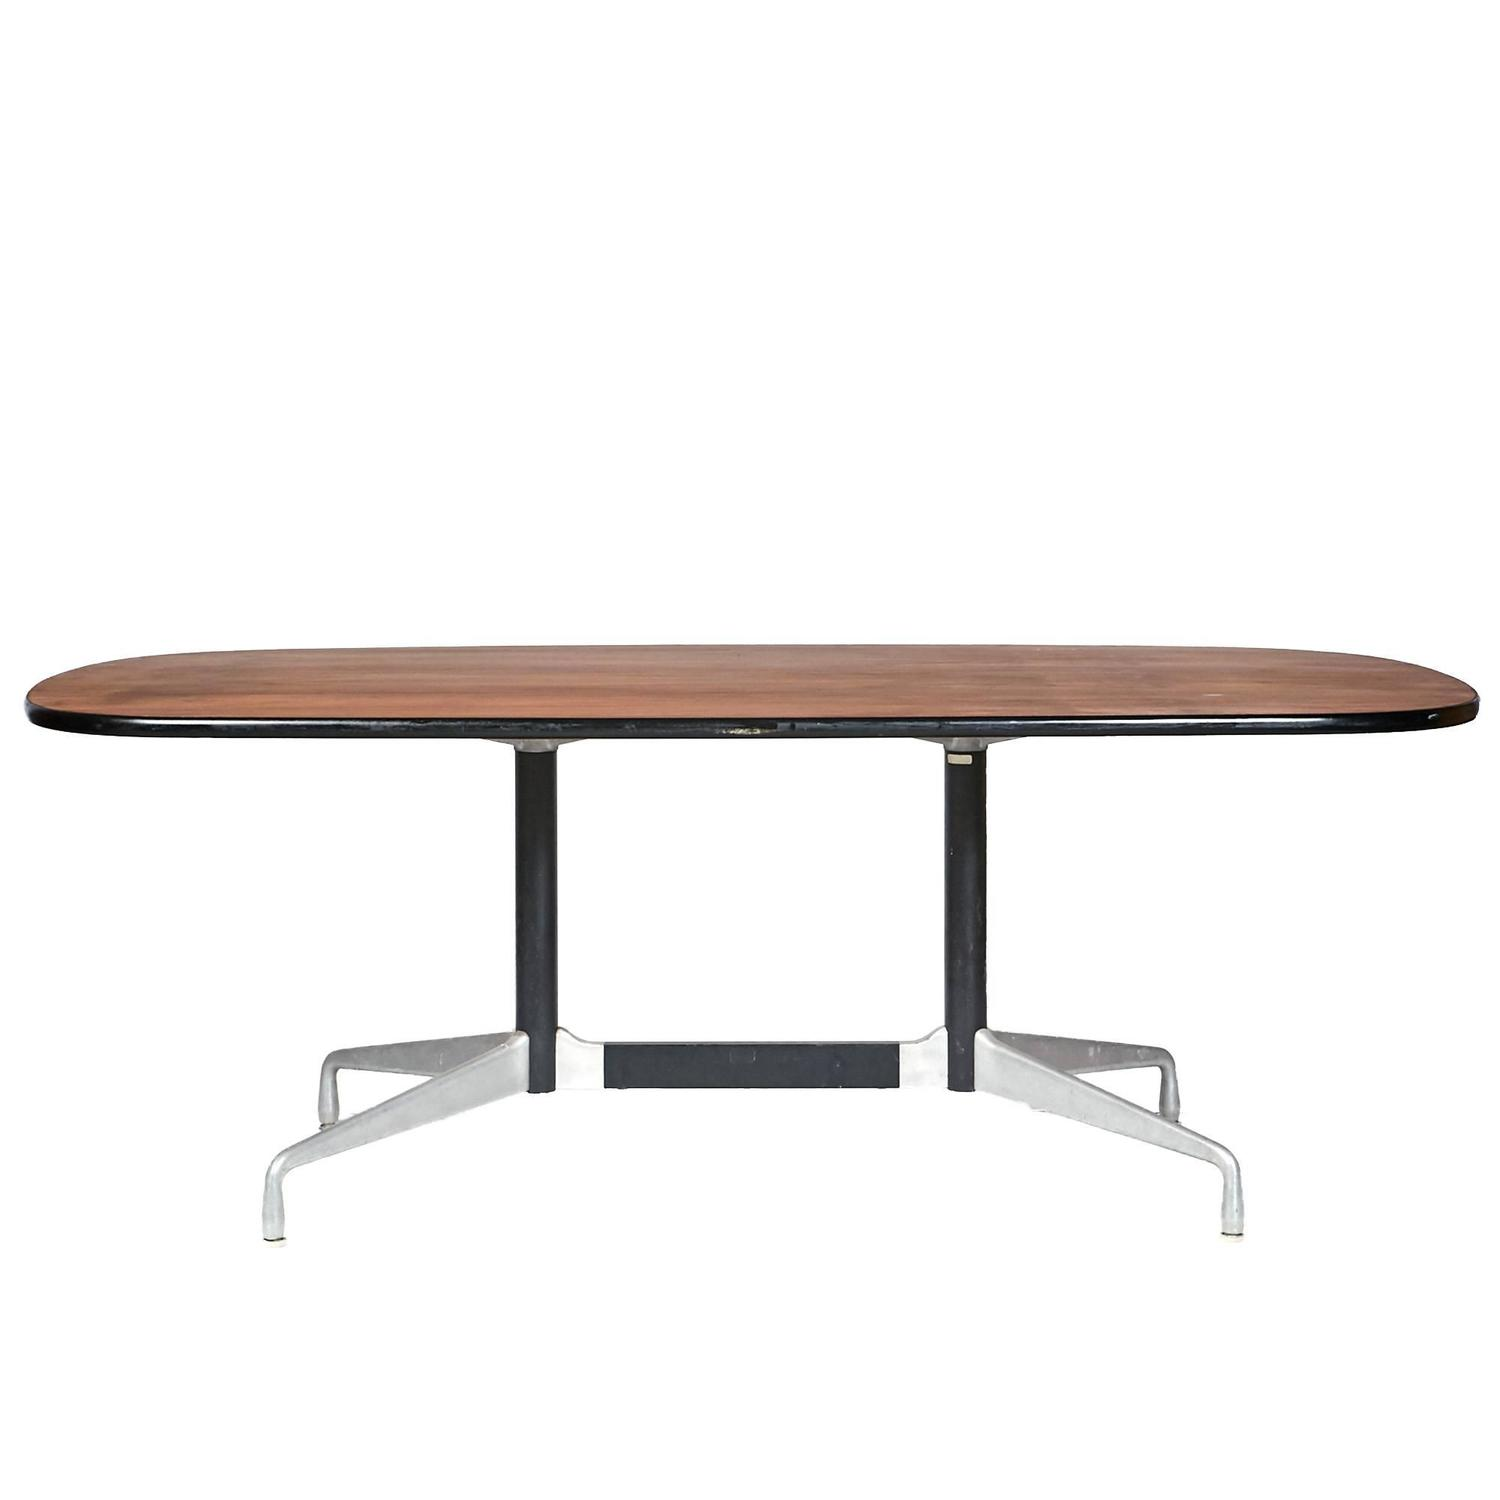 herman miller walnut top table by ray and charles eames 1964 at 1stdibs. Black Bedroom Furniture Sets. Home Design Ideas